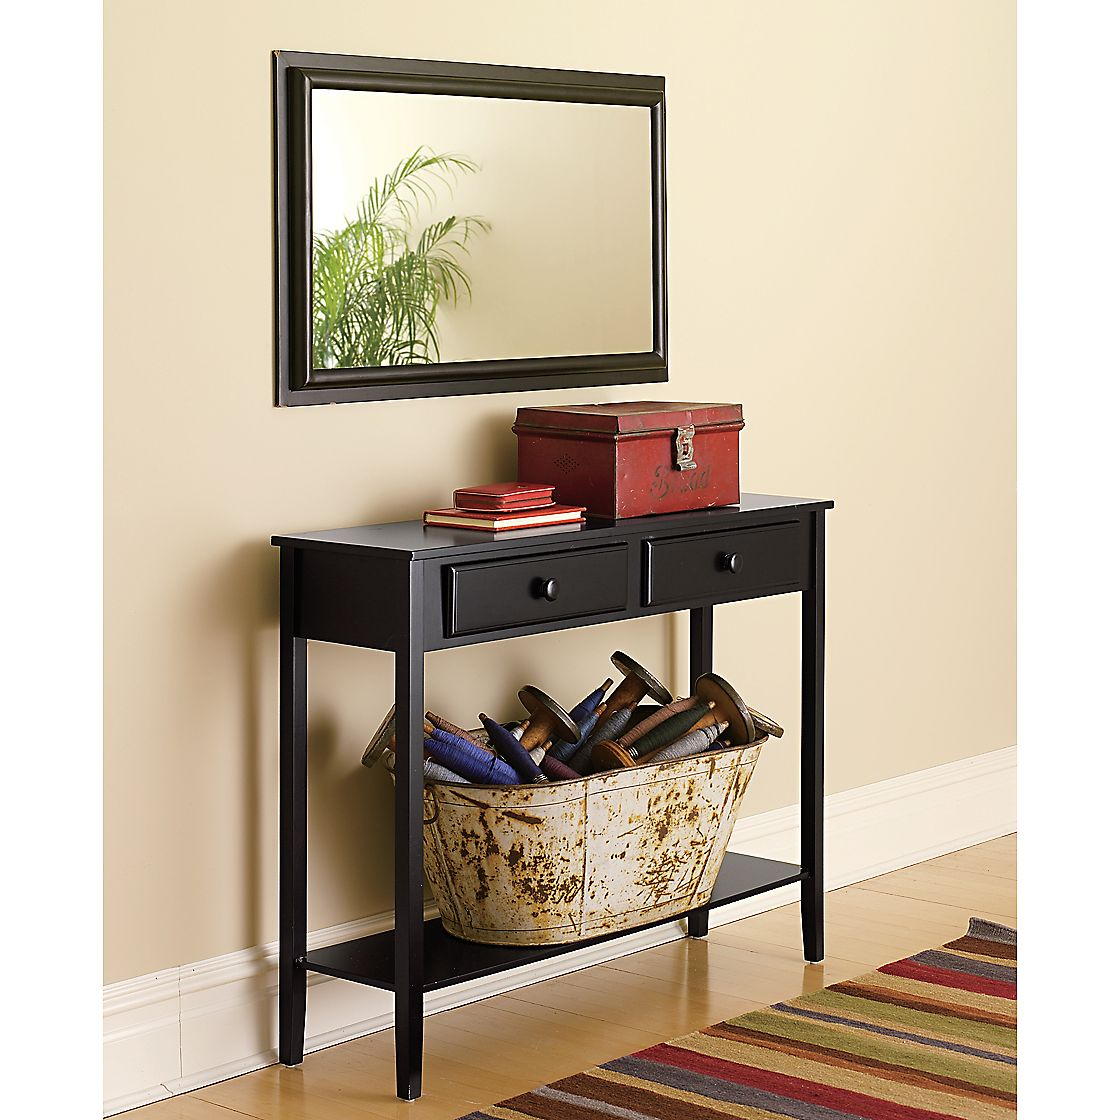 endearing hall console table and mirror set bedroom decoration best foyer with shoe storage view hallway accent black steel legs side wheels big round coffee small white half moon